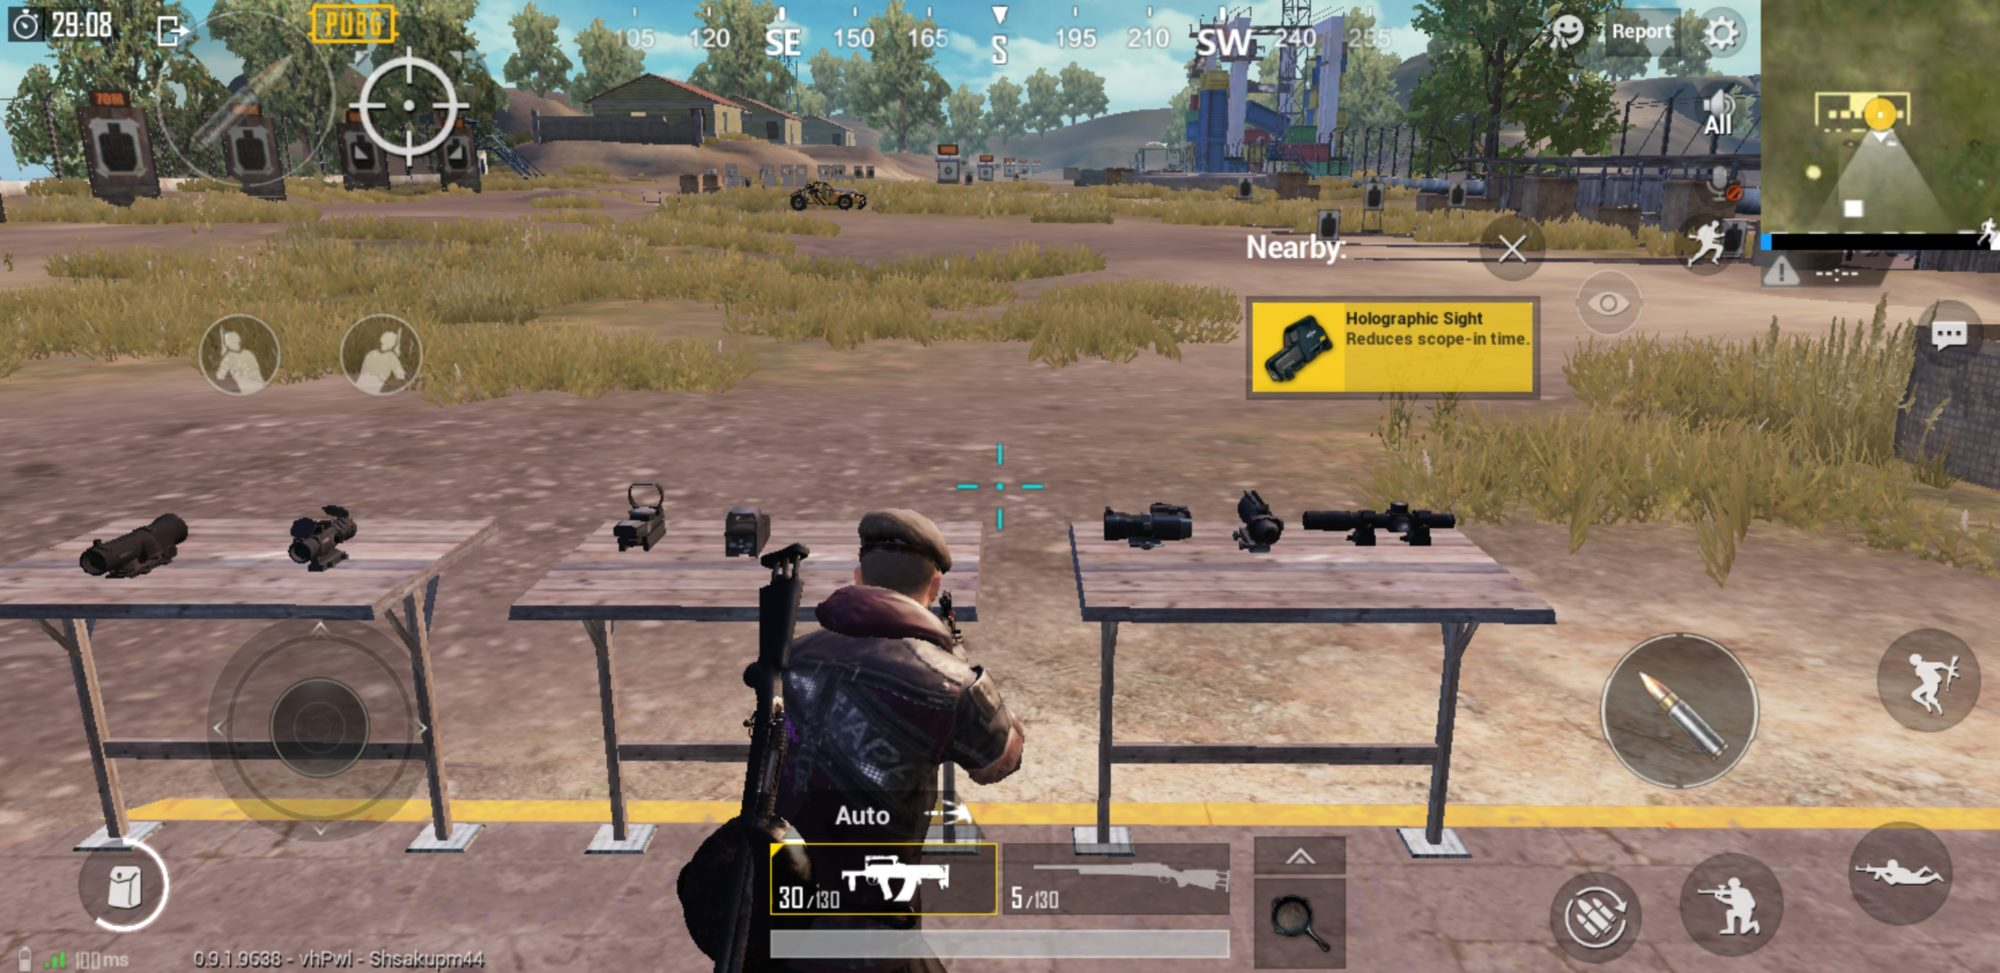 How To Improve In Pubg Mobile: How To Aim Better In PUBG Mobile